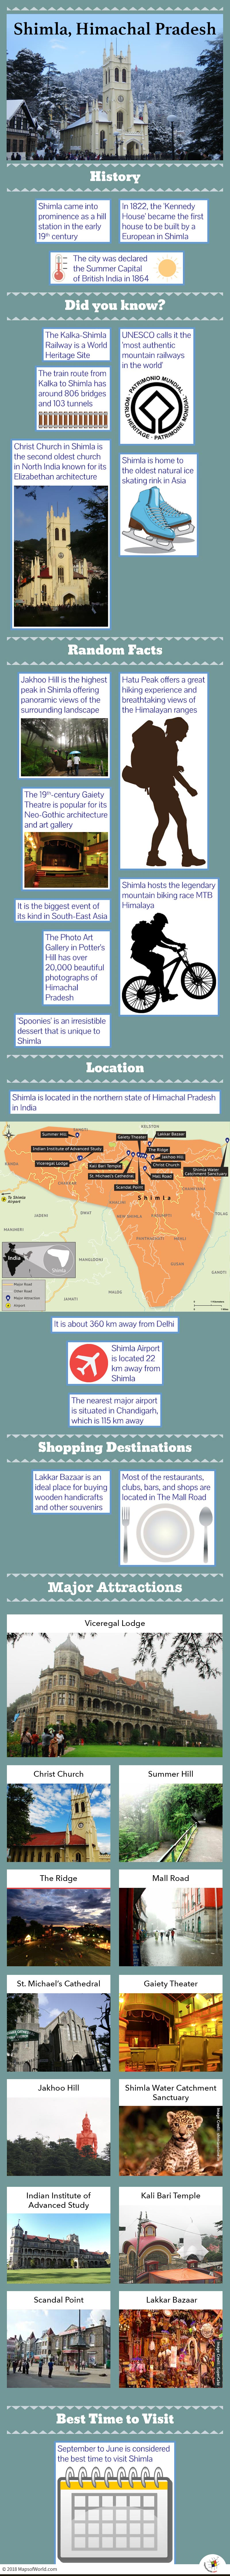 Infographic Depicting Shimla Tourist Attractions